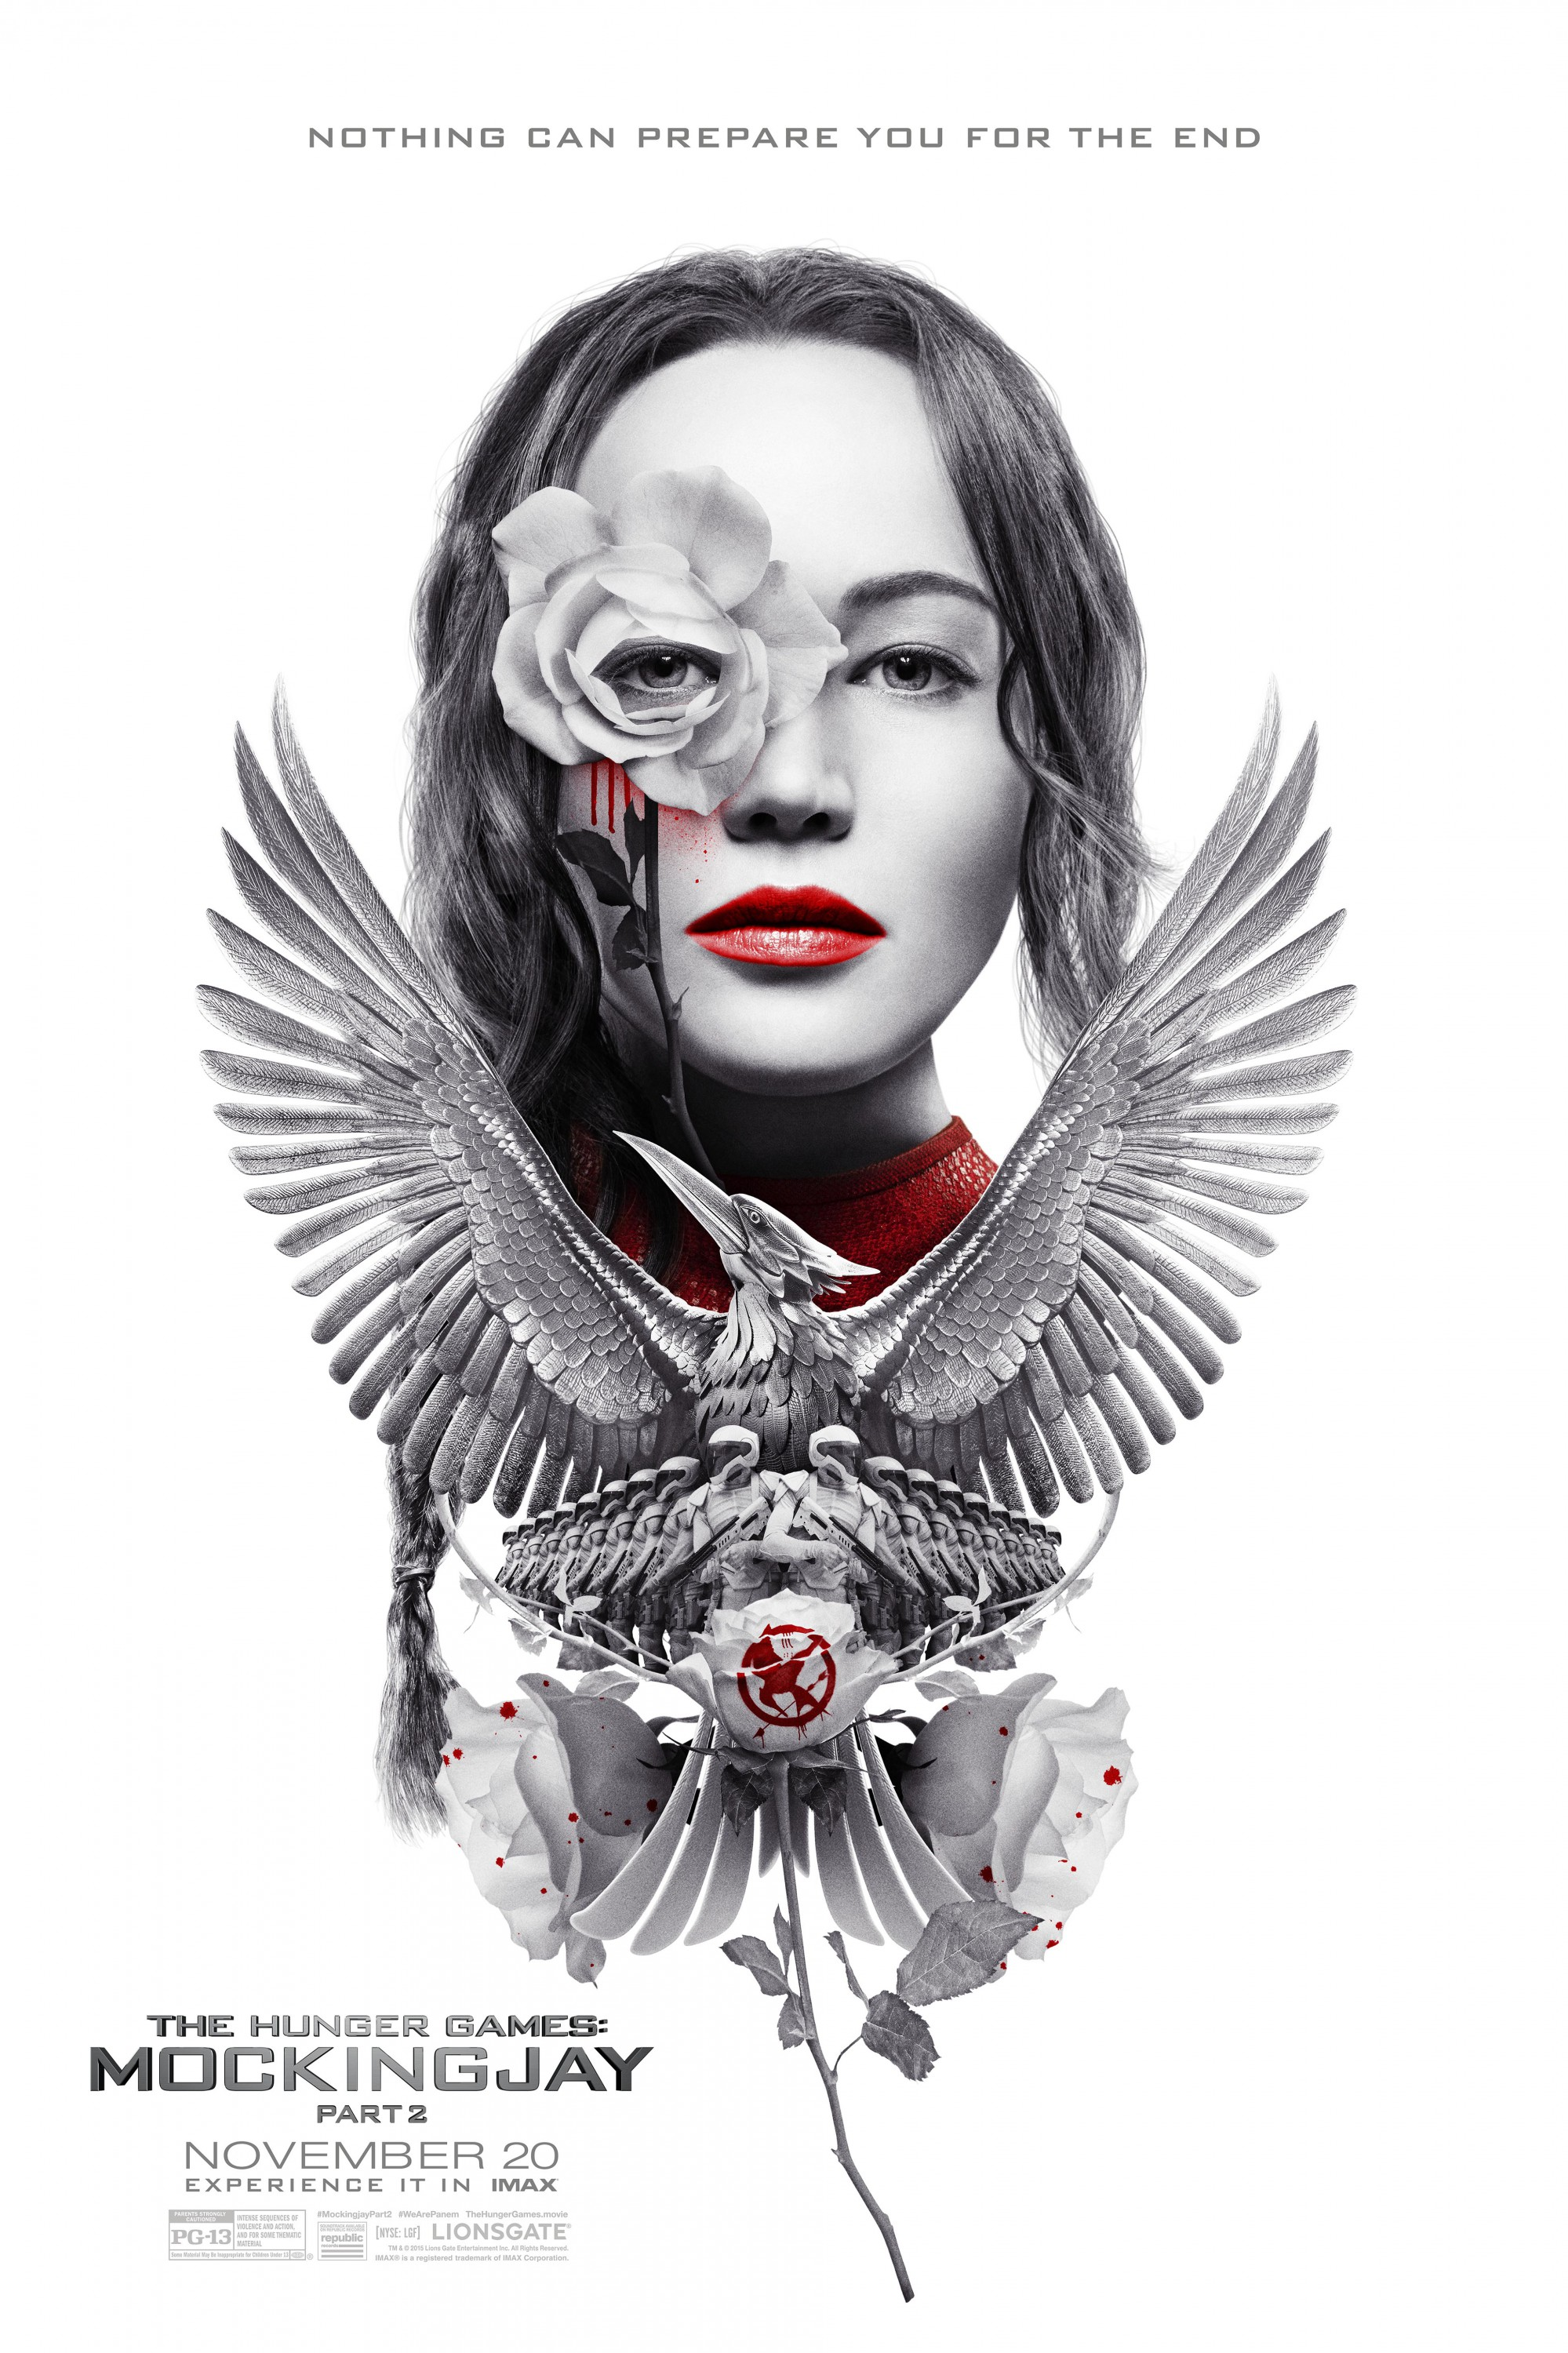 The Hunger Games Mockingjay Part 2-Poster IMAX-09Outubro2015